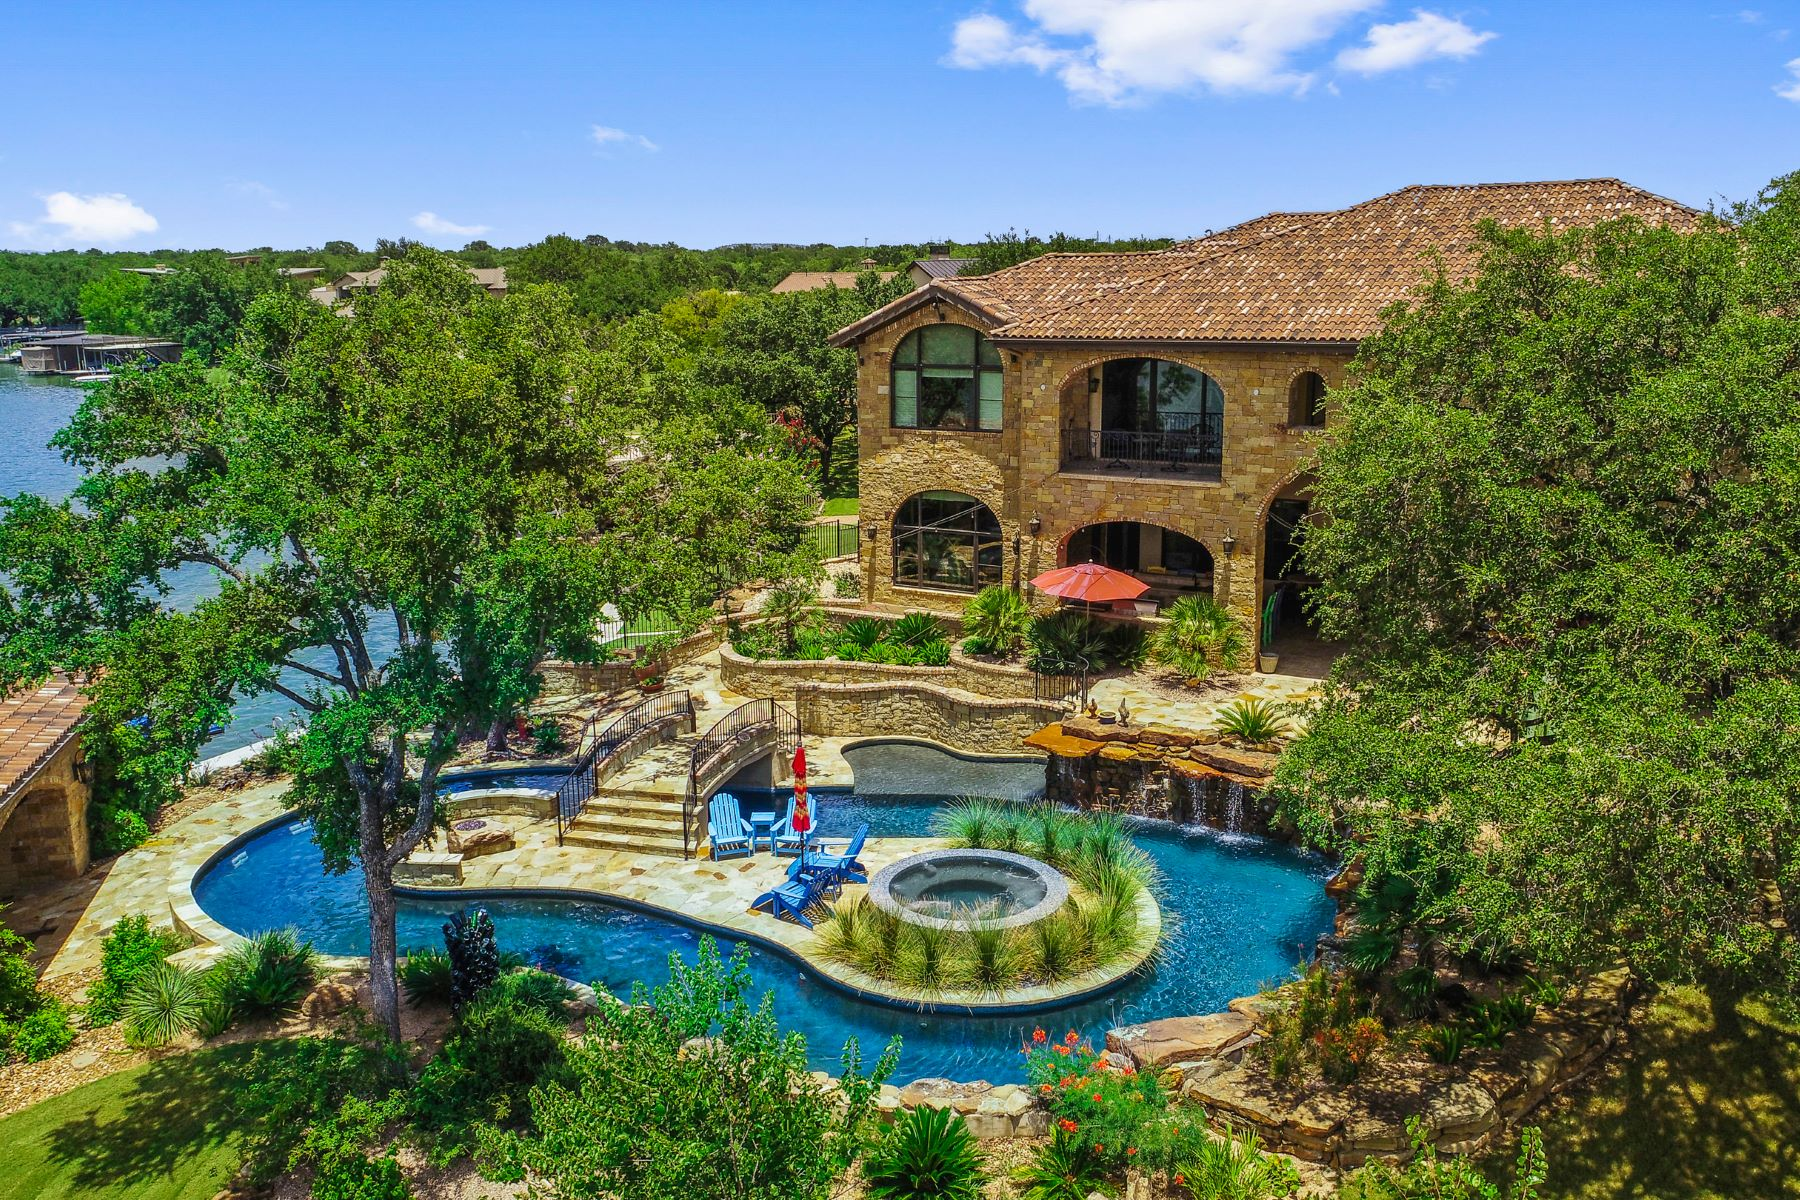 Single Family Homes for Sale at The Ultimate Lake LBJ Retreat 113 Wilderness Drive East on Lake LBJ Marble Falls, Texas 78654 United States